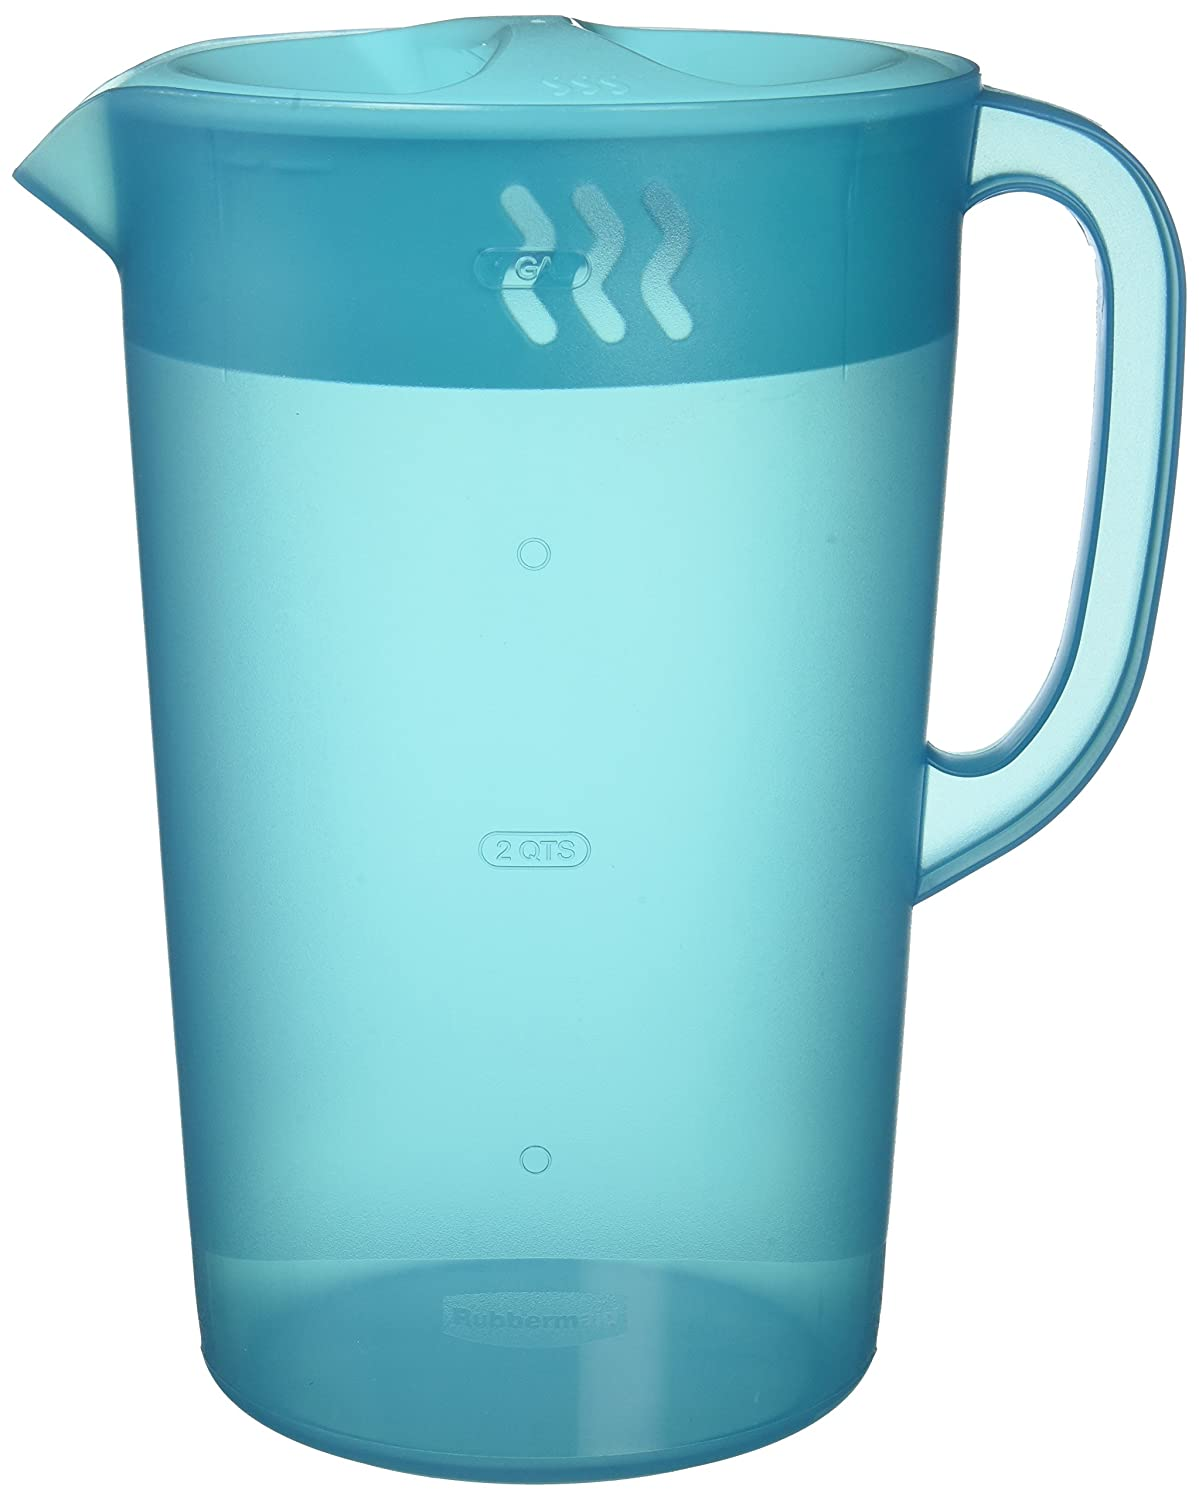 Rubbermaid Gallon Pitcher - Blue COMINHKPR90077